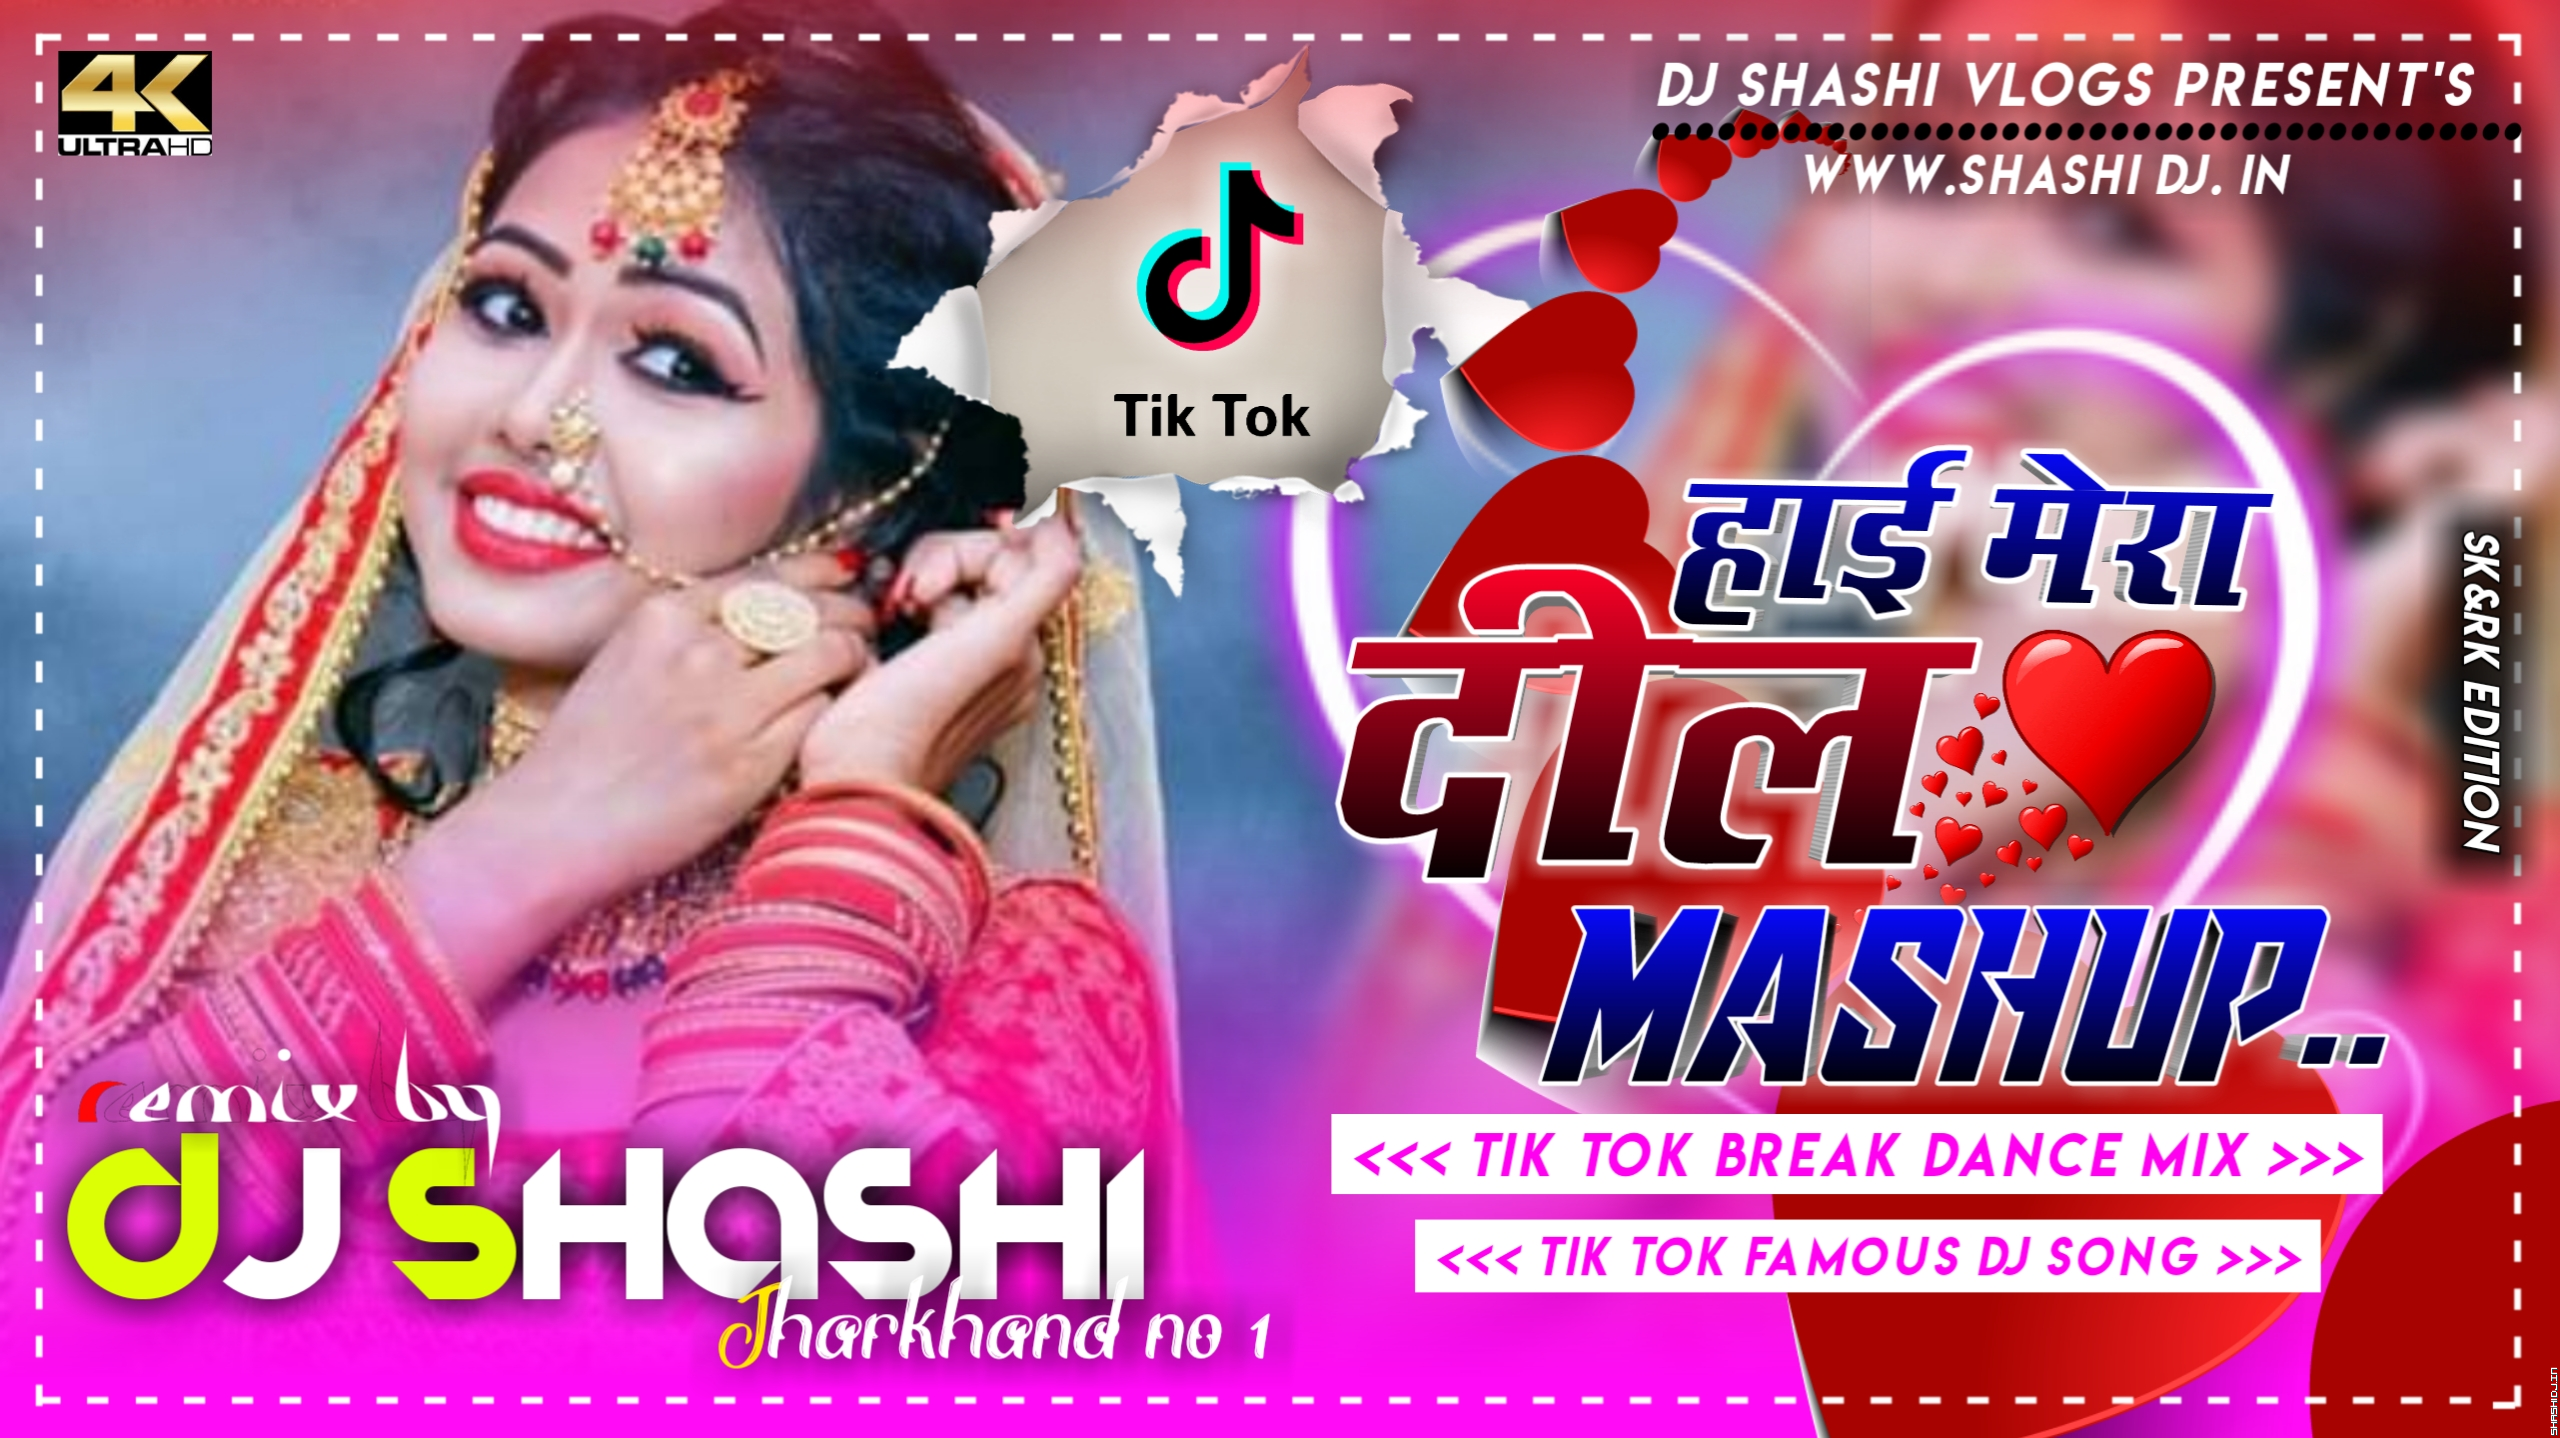 Haye Mera Dil-Mashup-Speaker Chek Vibration Mix-Dj Shashi.mp3